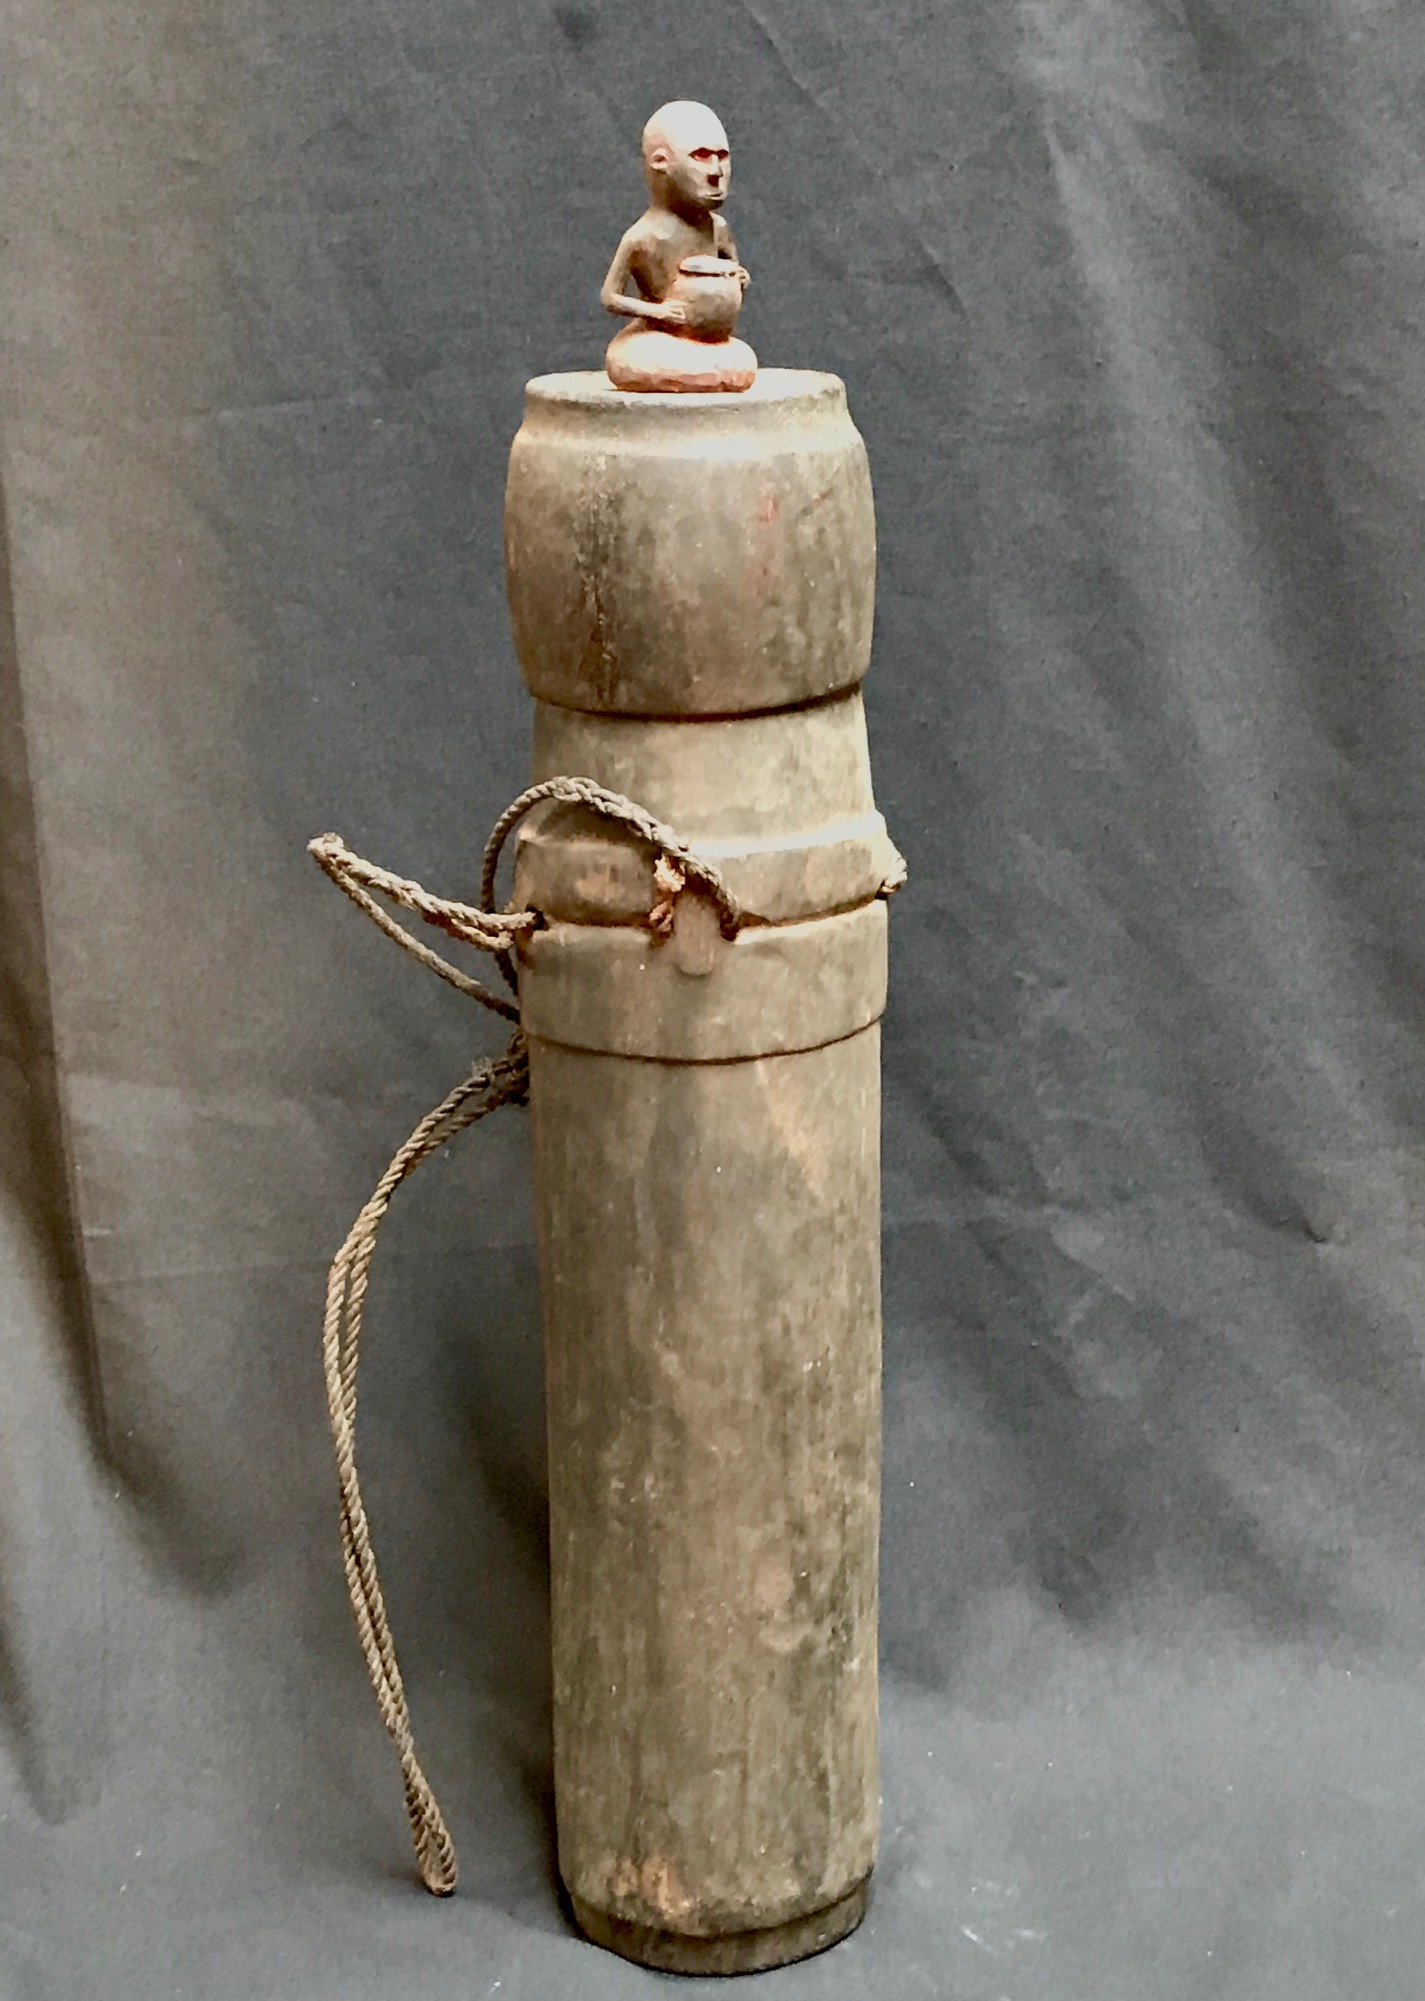 "Shaman's Medicine Jar/Container for healing herbs and substances, with carved seated figure holding a ceramic or wooden vessel. Sumba Indonesia, early 20th c., bamboo, wood, twine, pigment, 23"" x 7"""